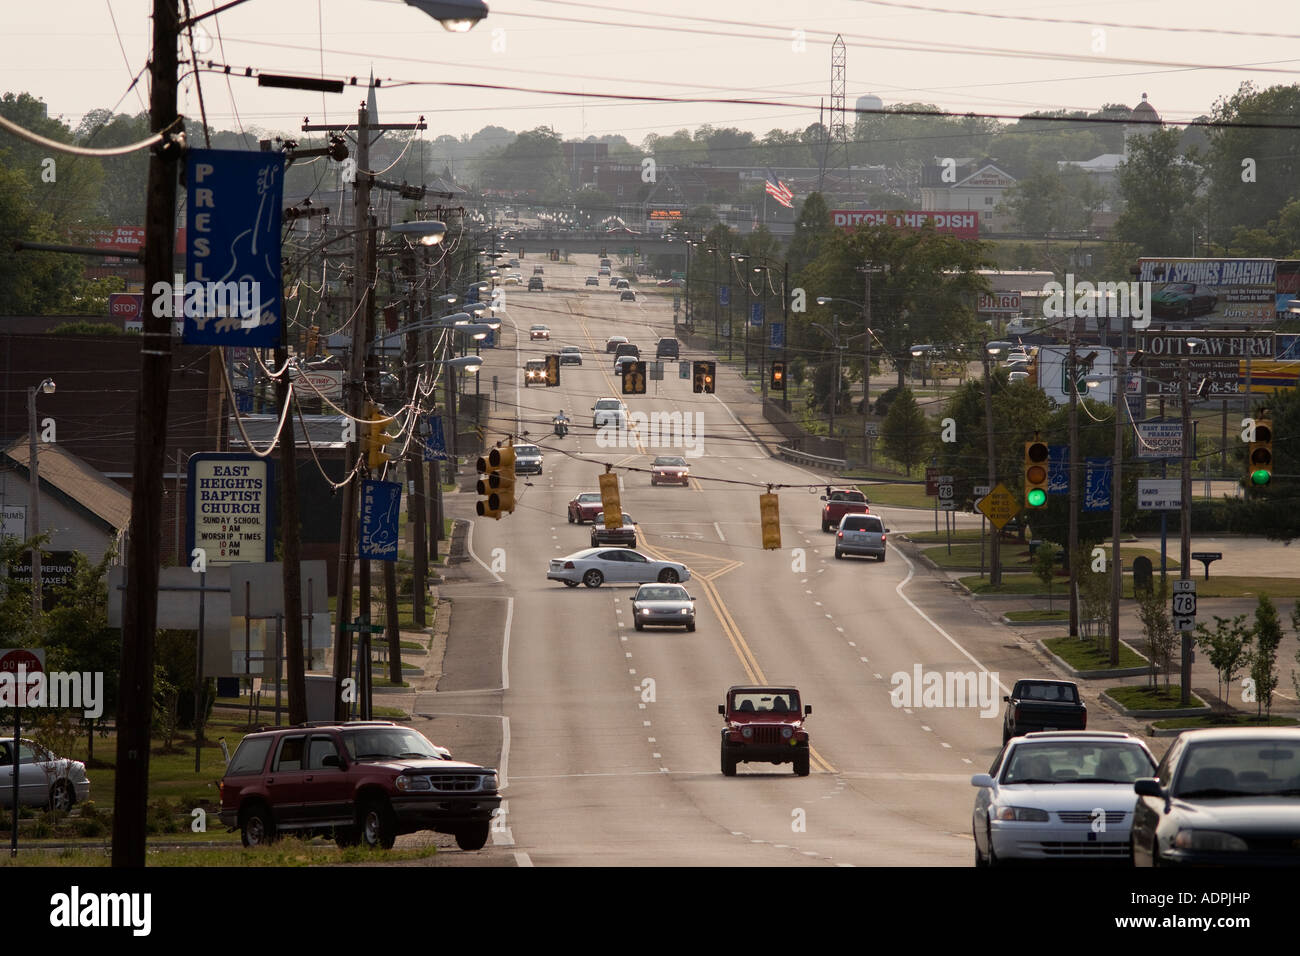 Tupelo Mississippi - Presley Heights and Main Street with Tupelo Hardware in the distance: pilgrimage site for fans - Stock Image